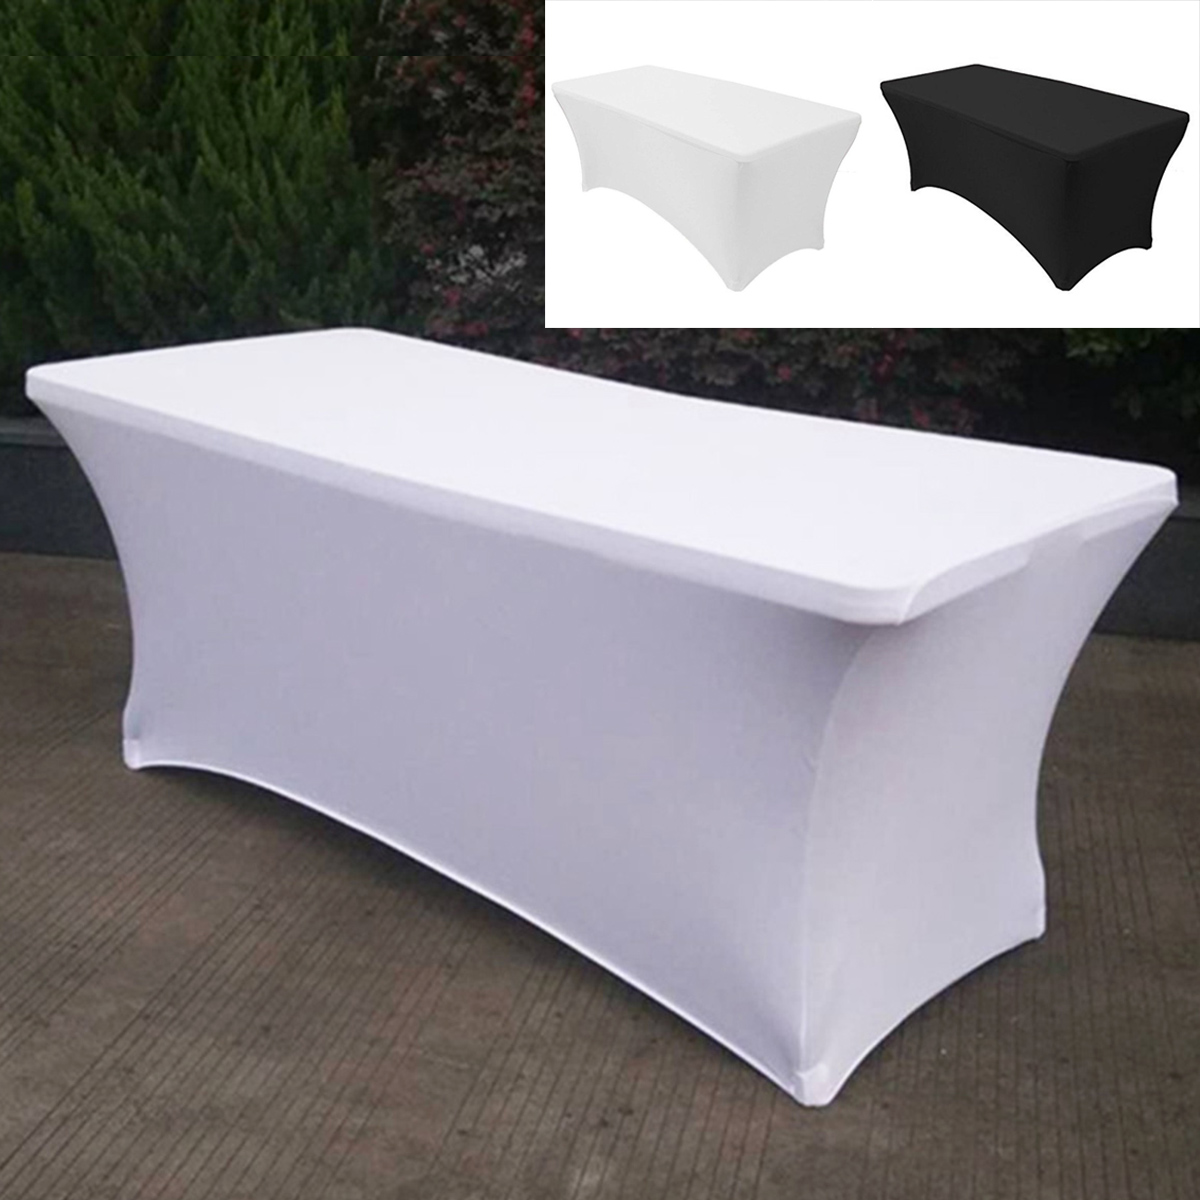 Details About 6ft Stretch Spandex Table Covers Fitted Rectangular Tablecloths Black White